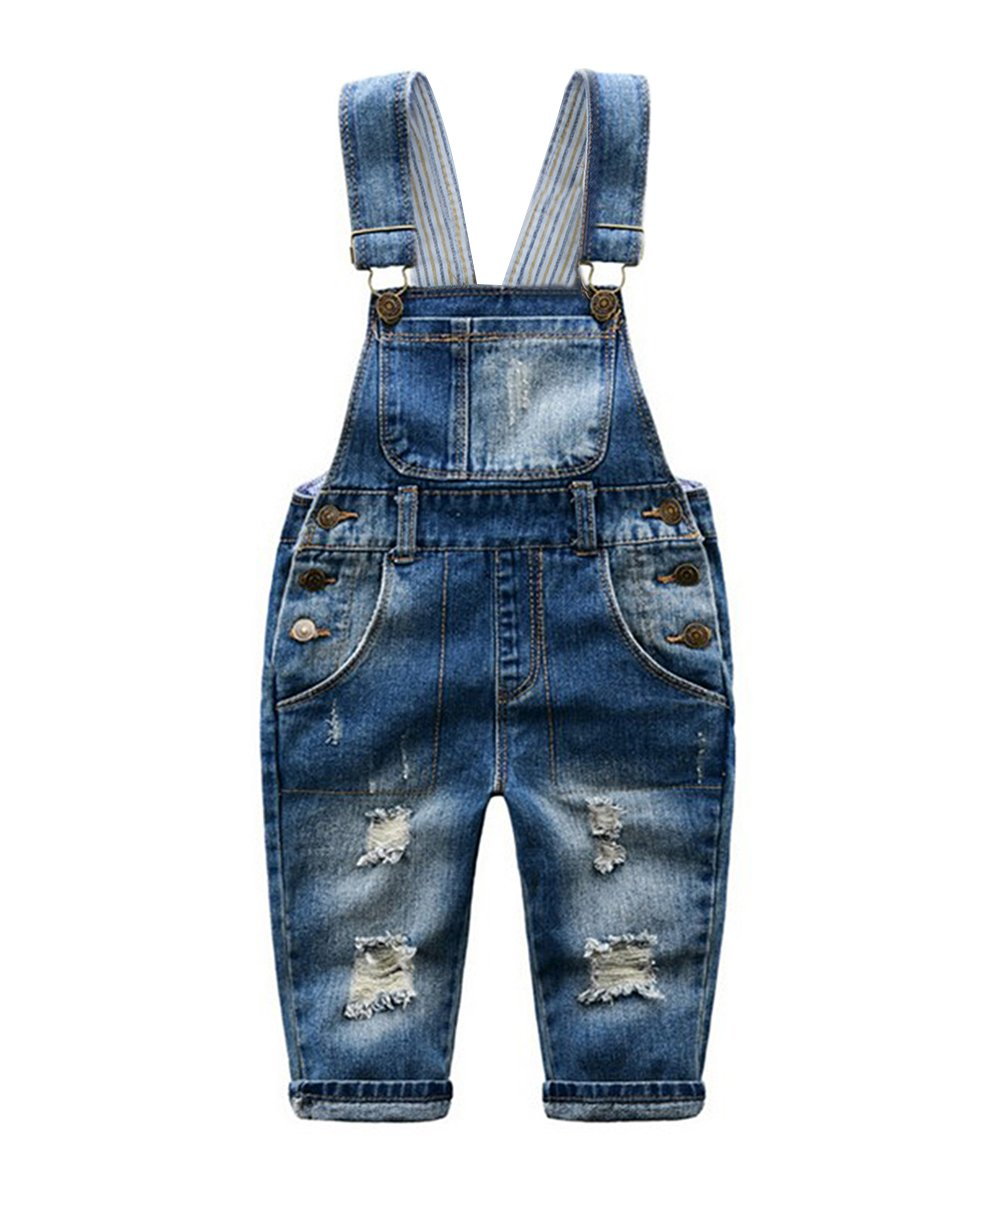 Tortor 1Bacha Little Girls' Ripped Distressed Denim Bib Overall 3T by Tortor 1Bacha (Image #1)